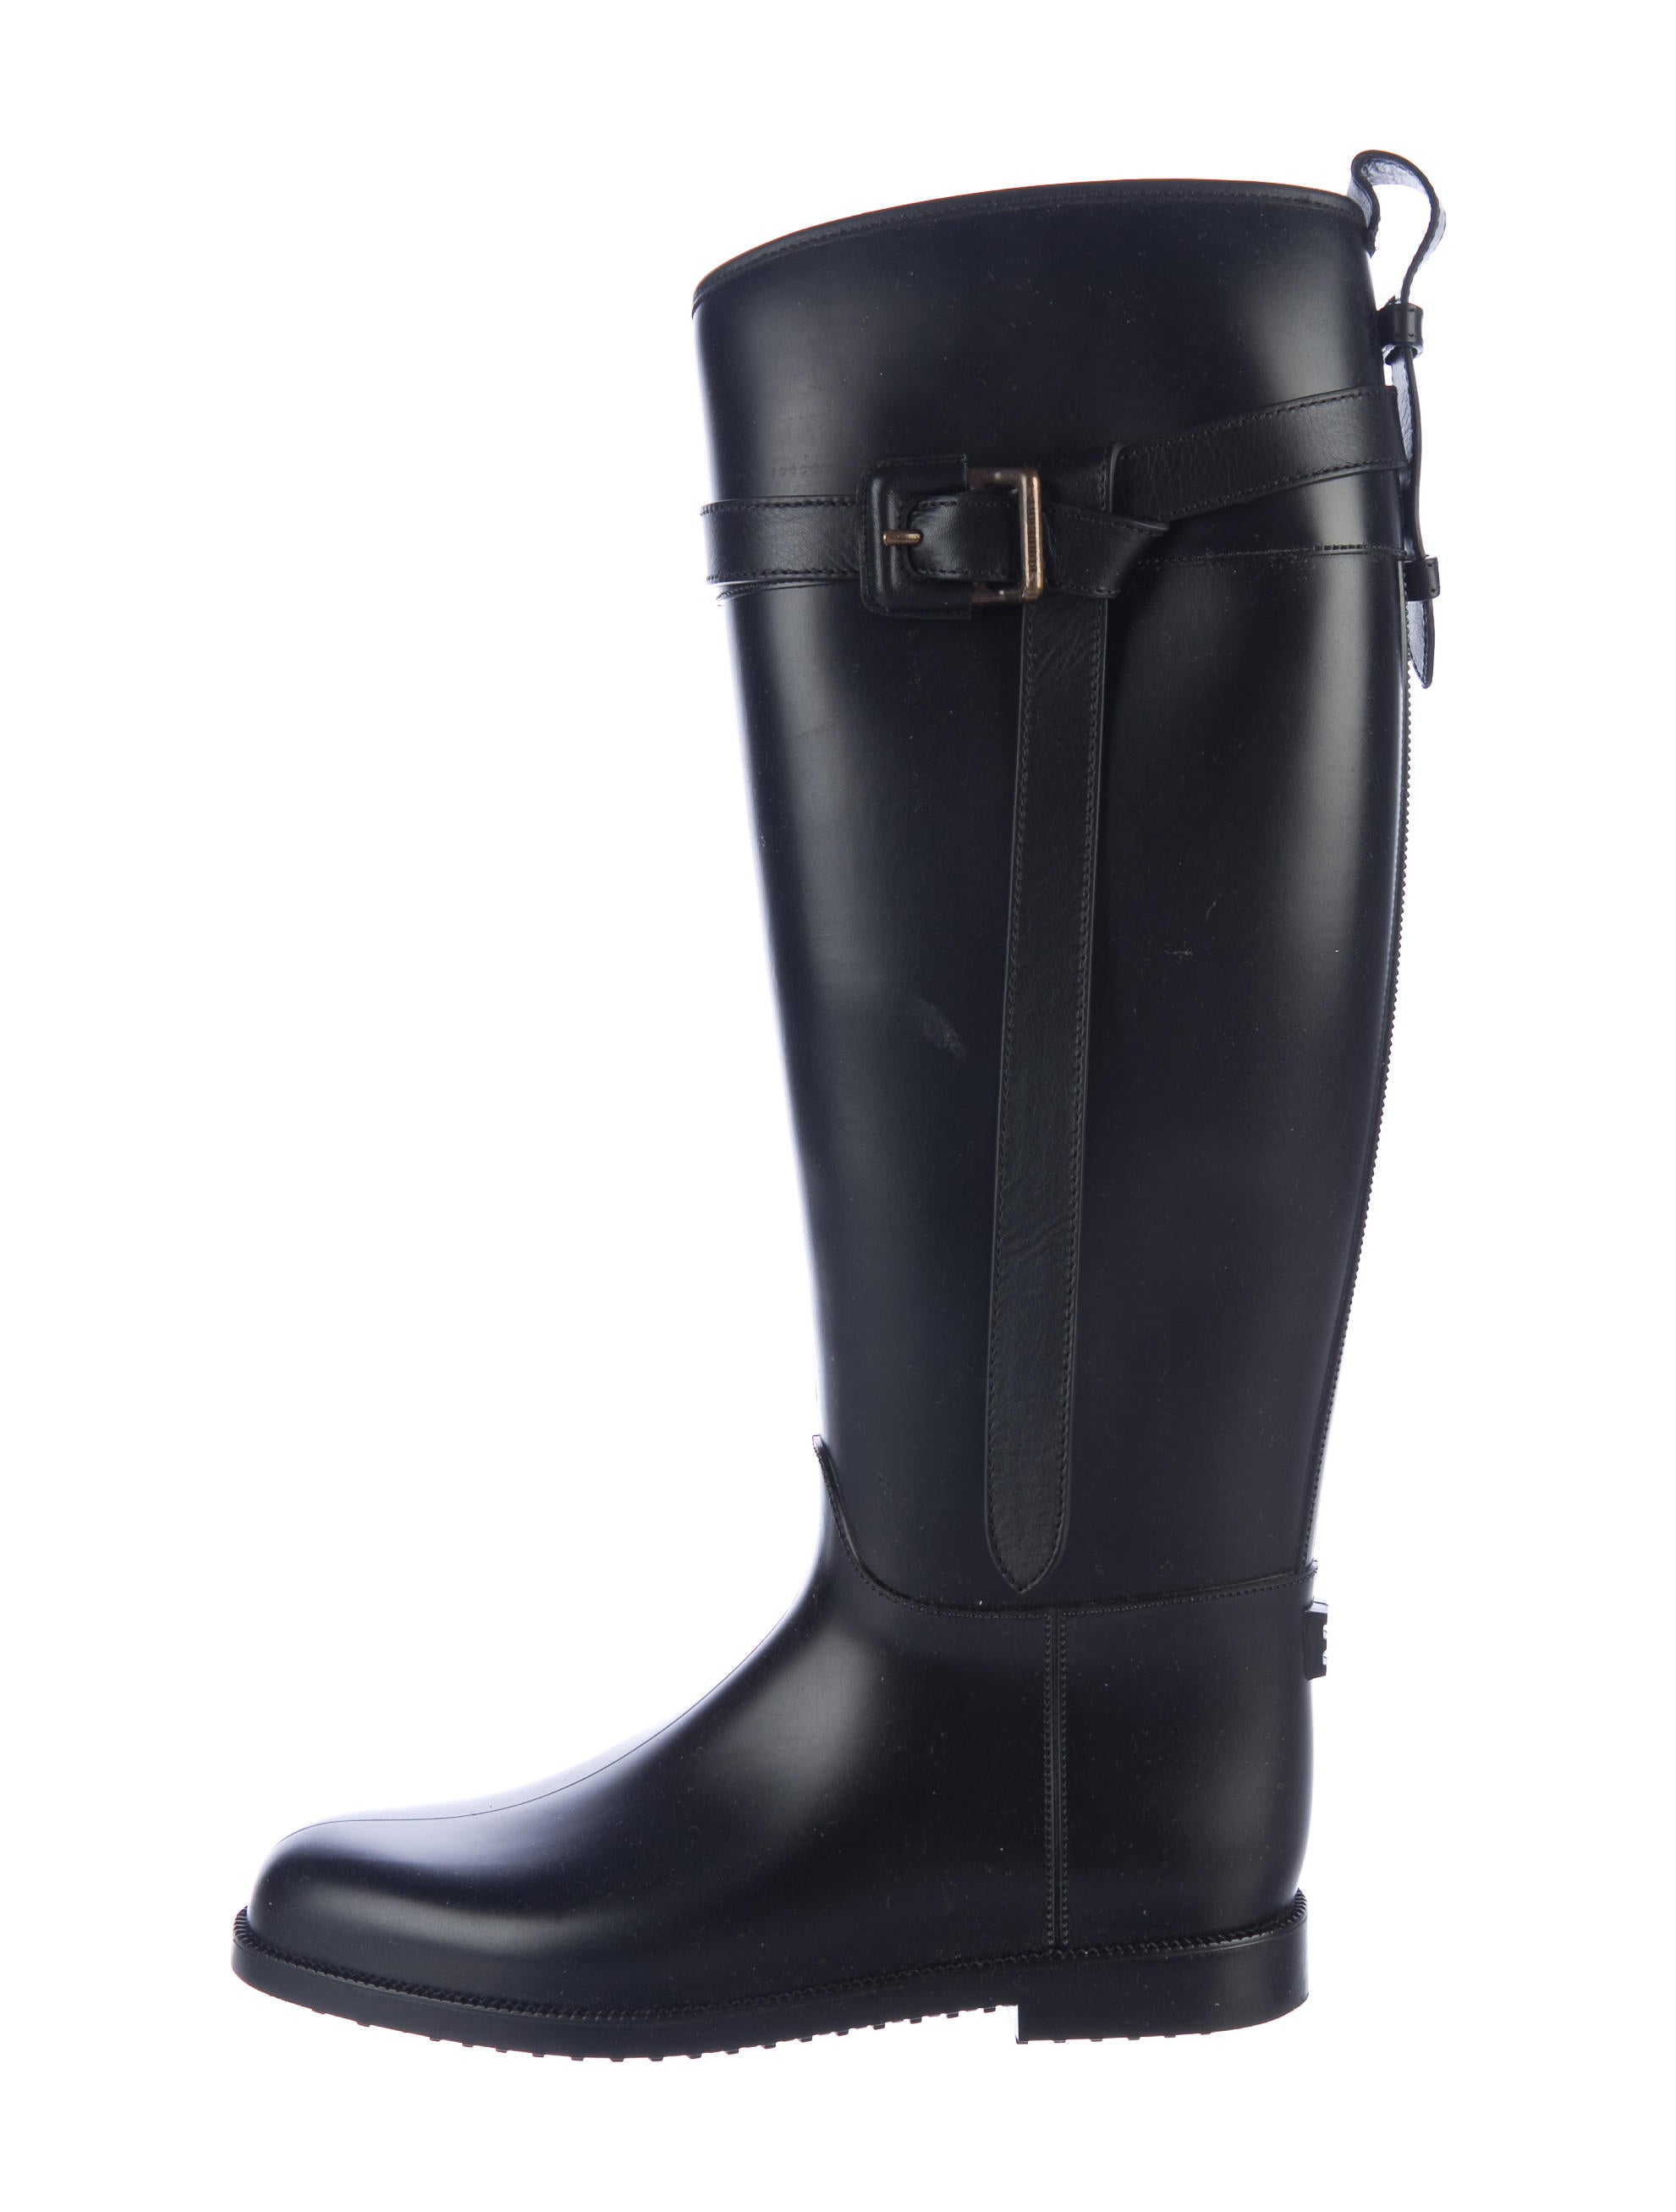 burberry rubber knee high boots shoes bur75607